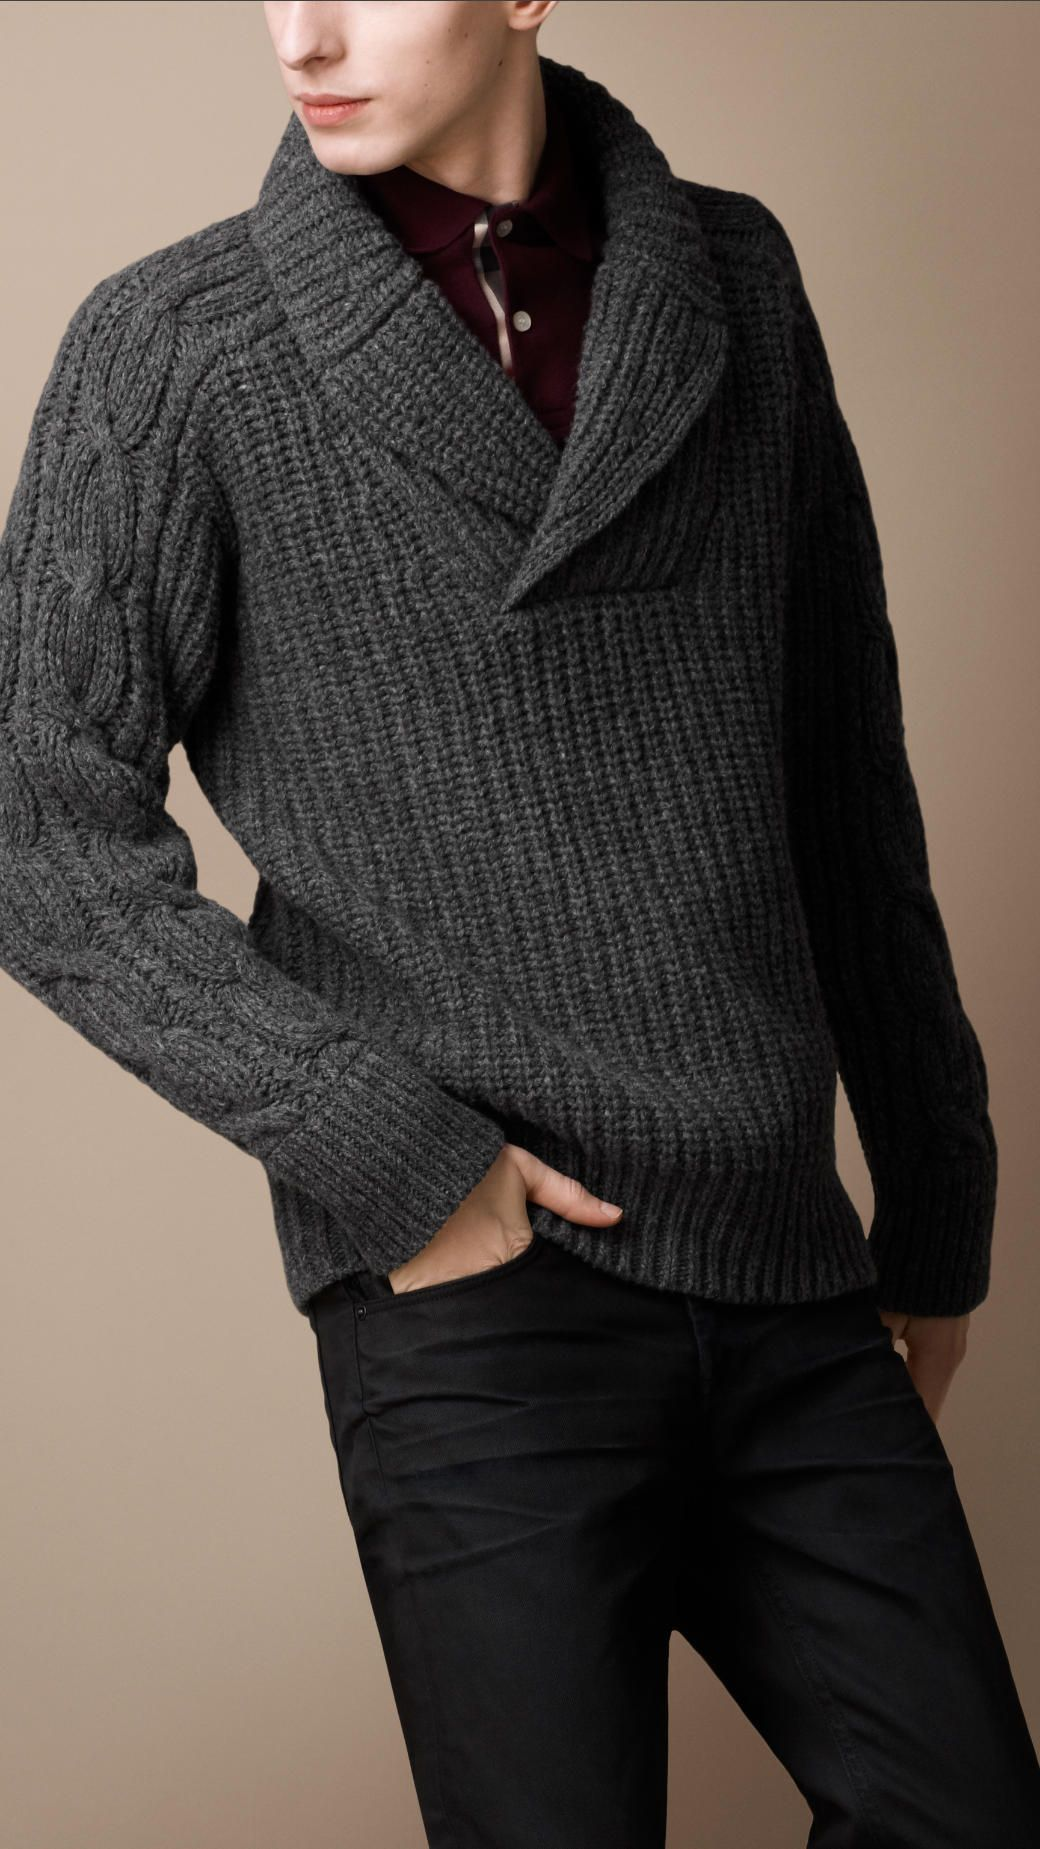 Burberry Shawl Collar Cable Knit Sweater Knitspiration If My Man